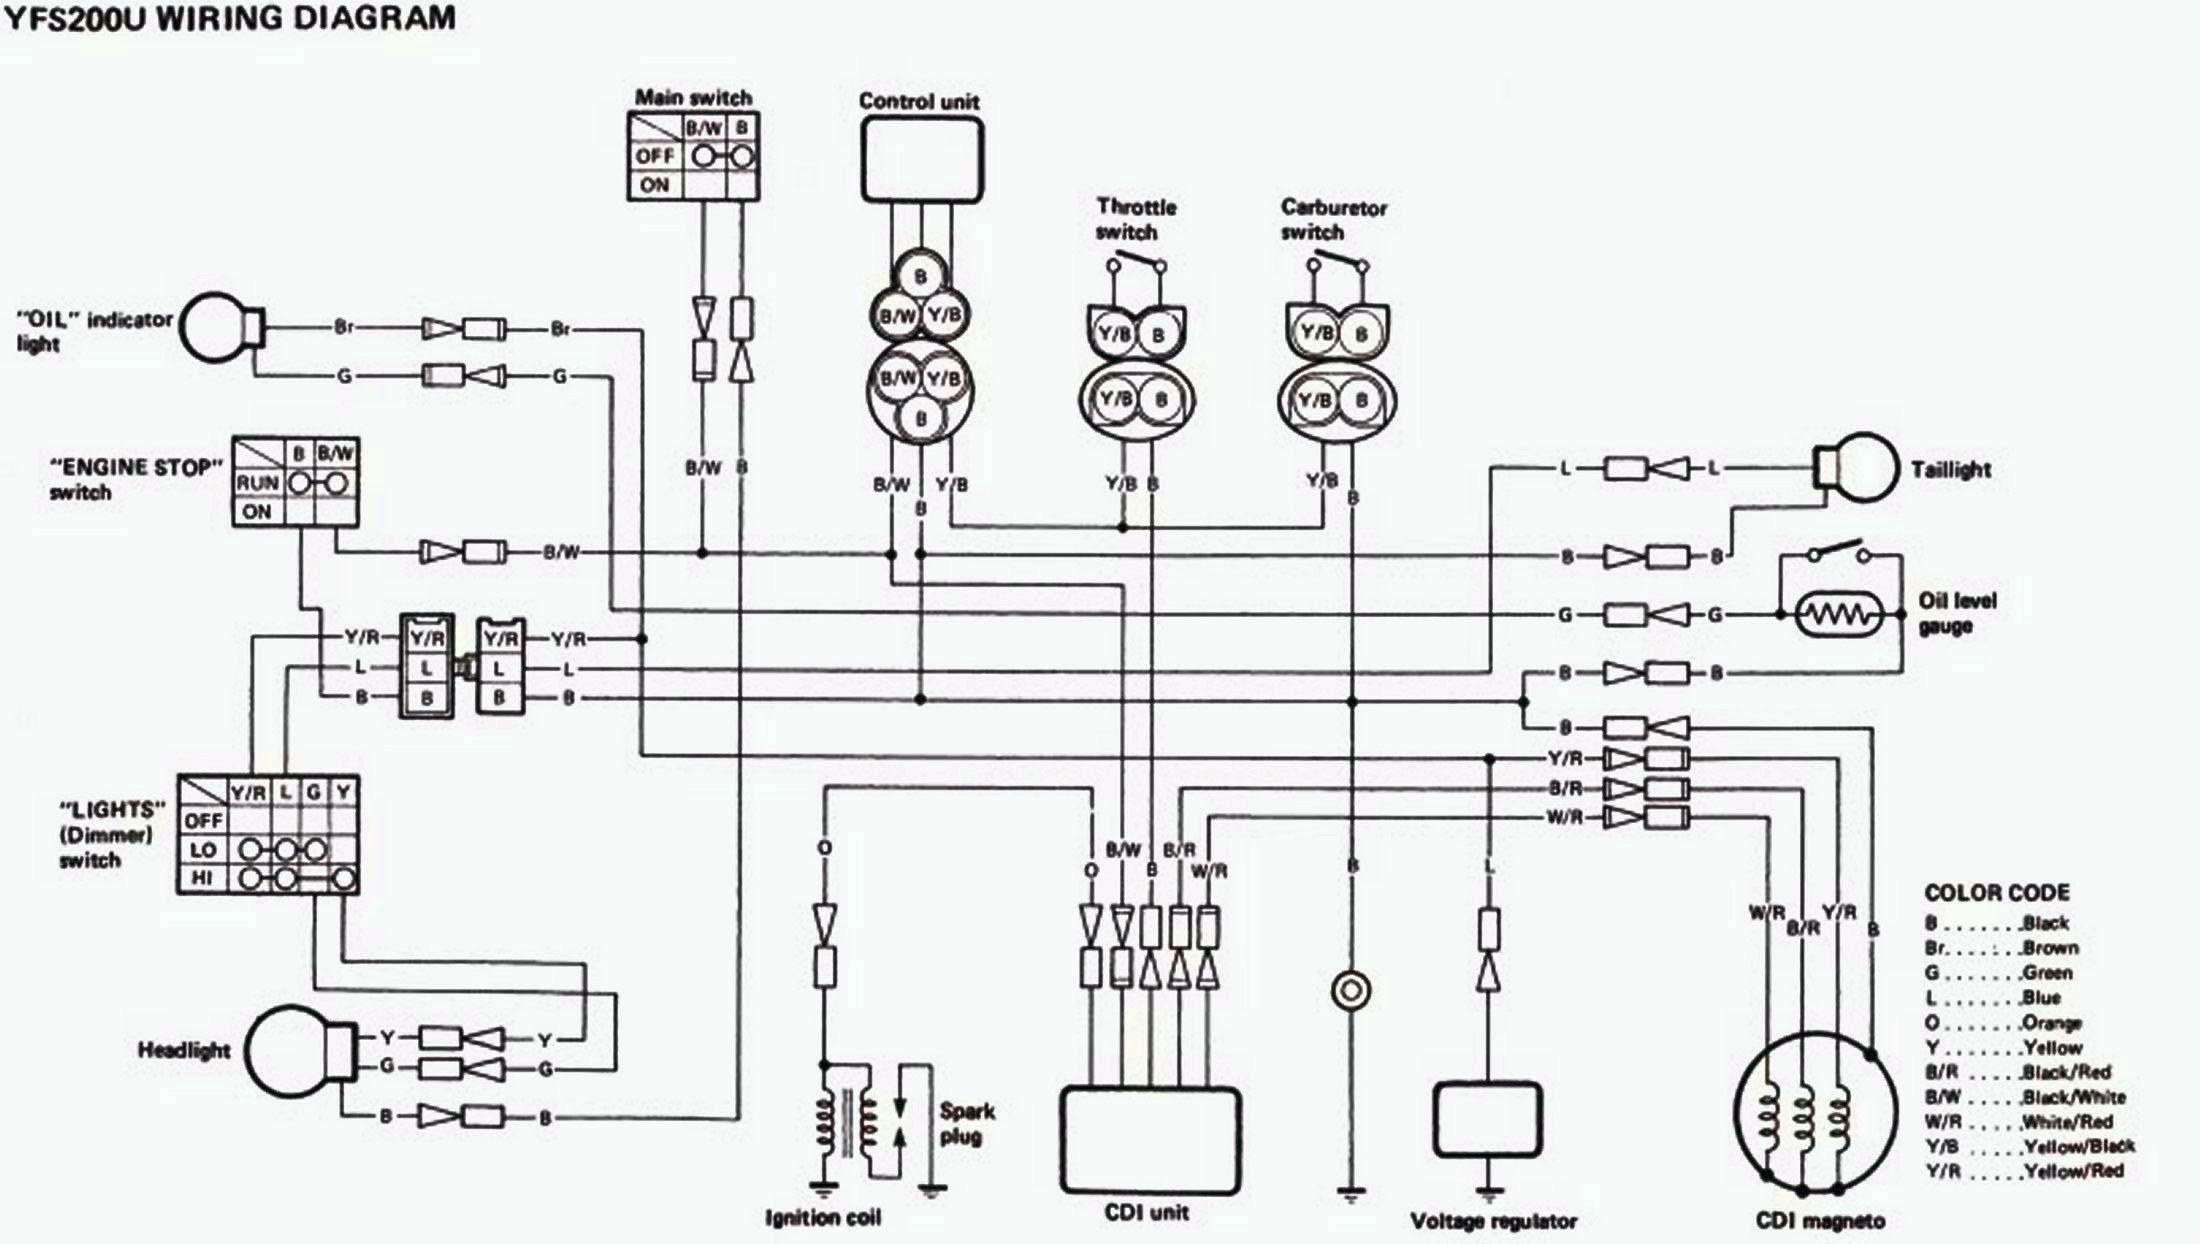 yamaha blaster wiring diagram yamaha banshee wiring diagram \u2022 free yamaha banshee wiring harness routing at mifinder.co